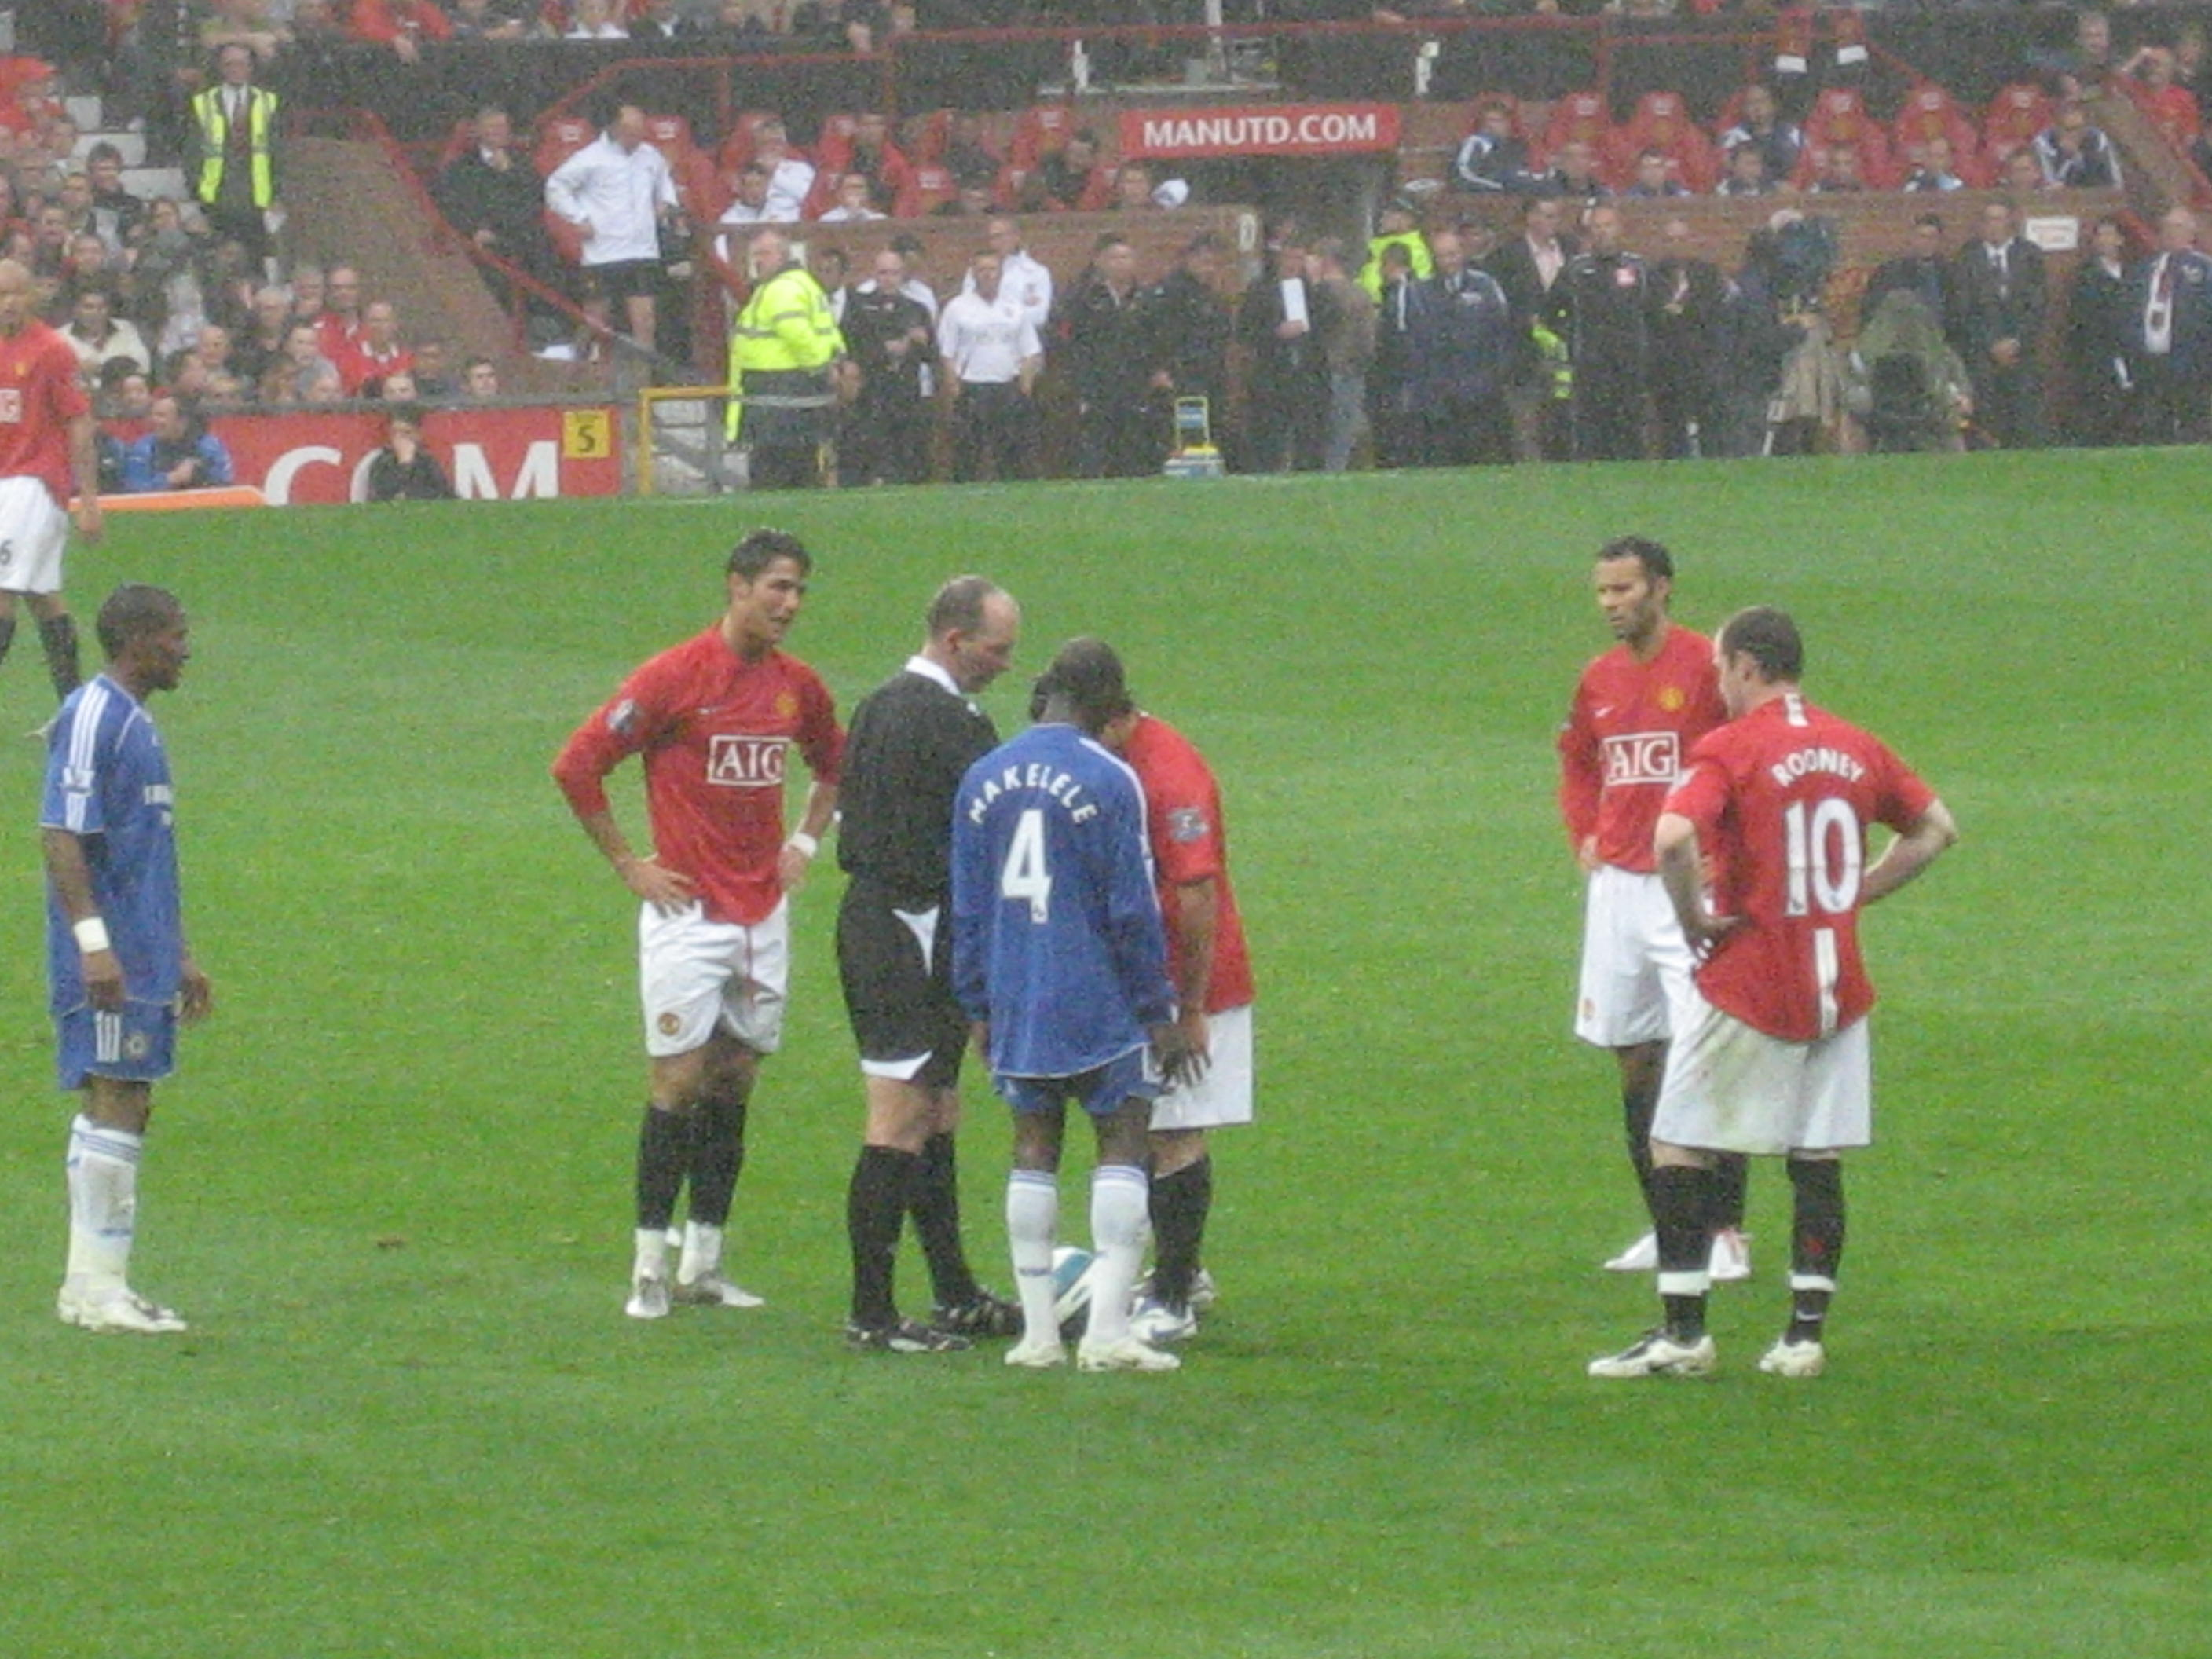 Chelsea Was That A Man: File:Man U Vs Chelsea Ref.jpg